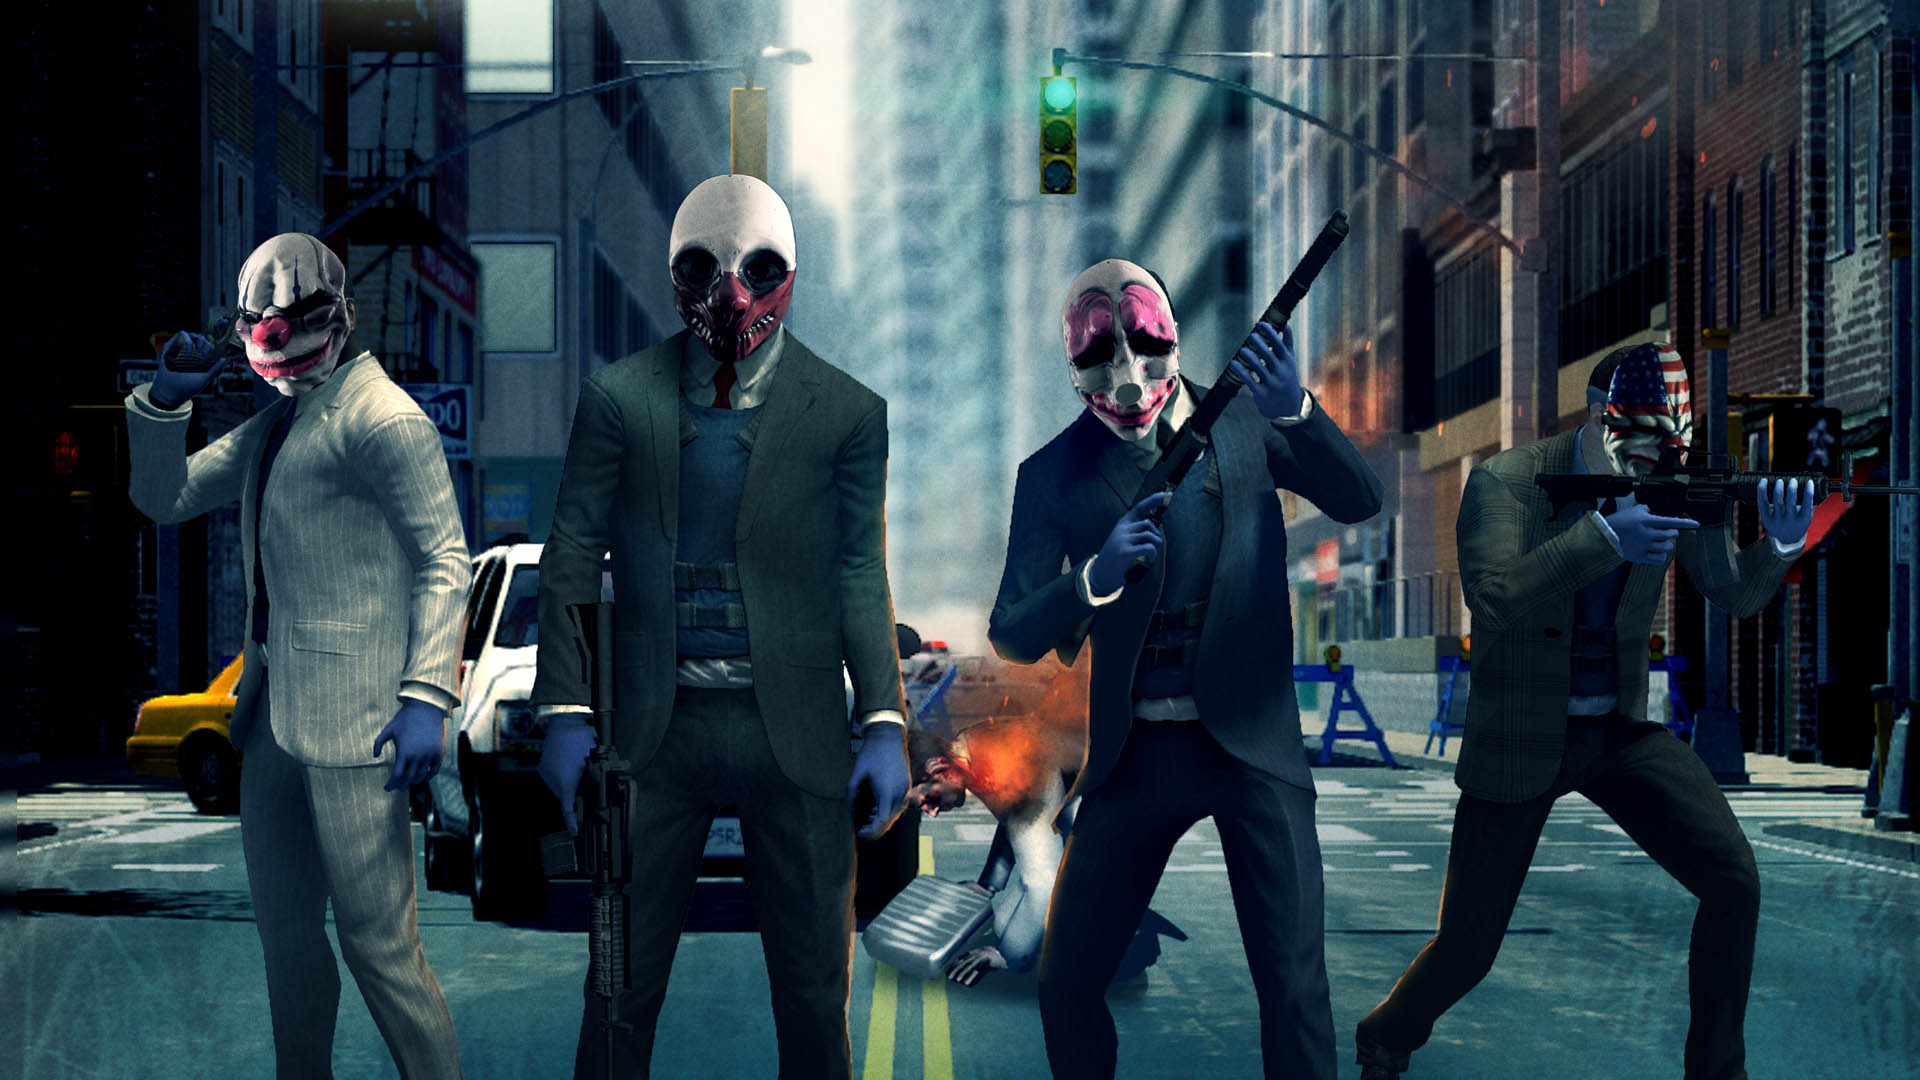 payday 2 wallpaper 1920x1080